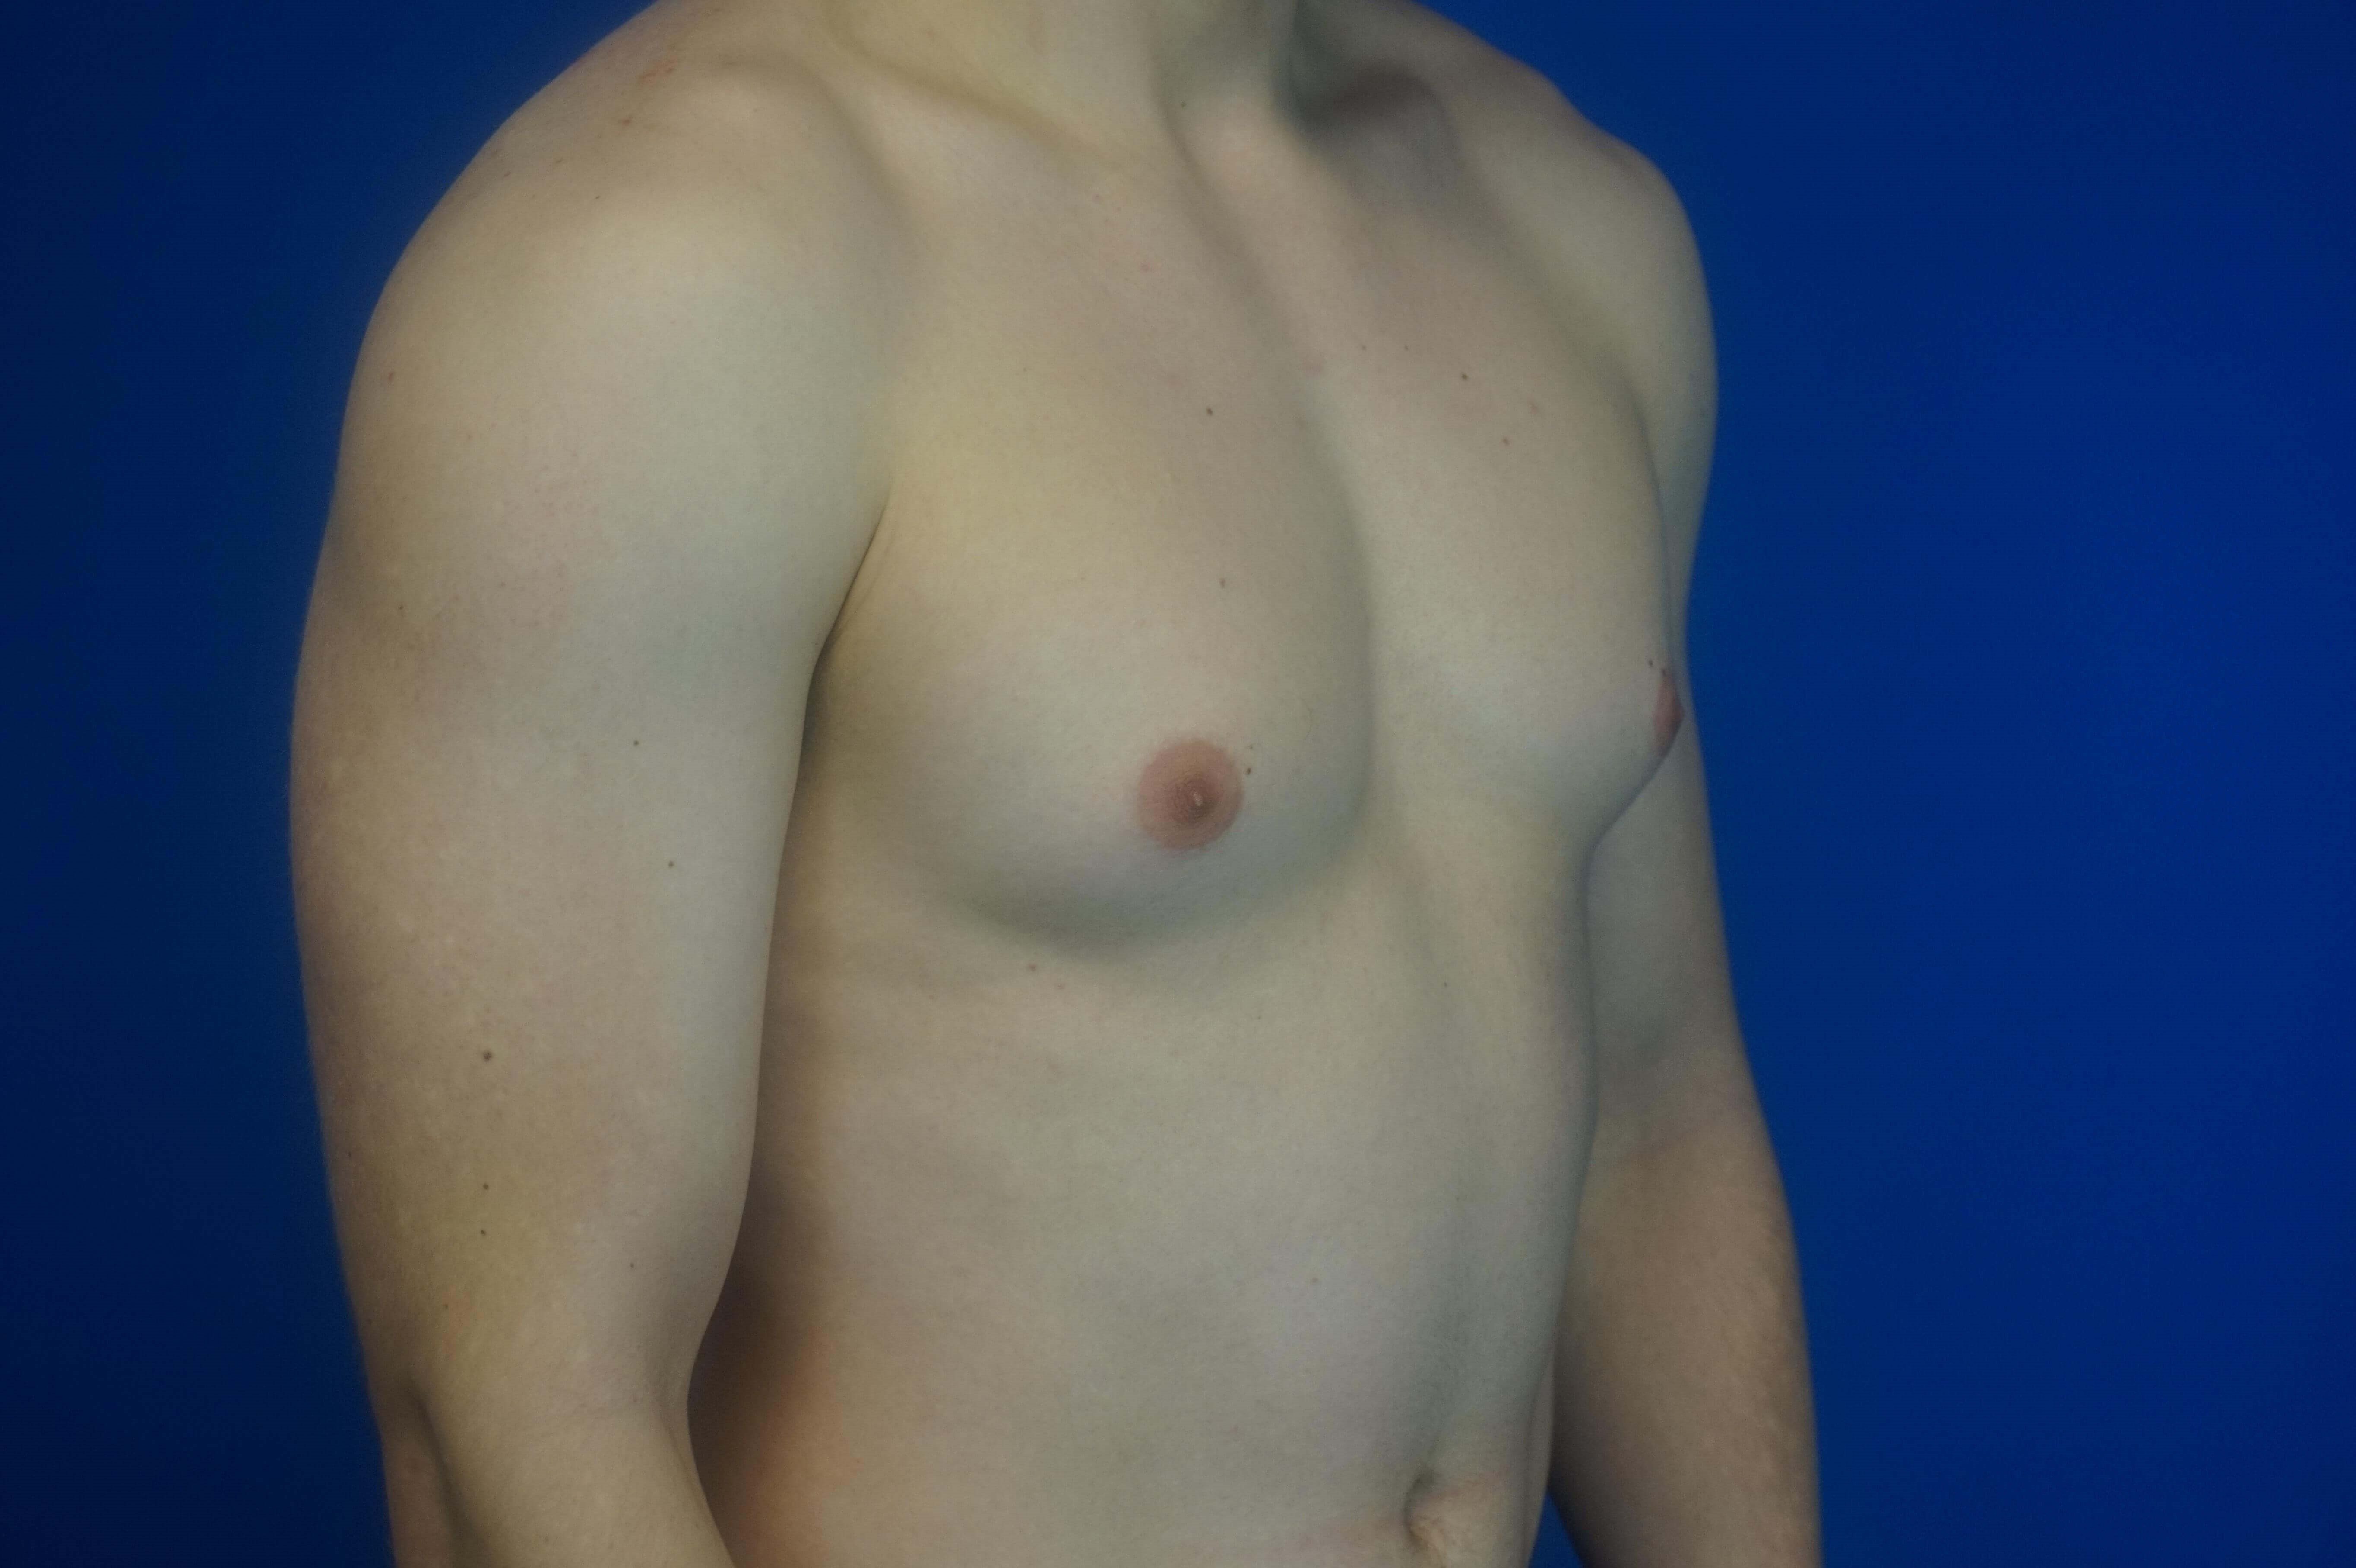 Excision of Gynecomastia Before